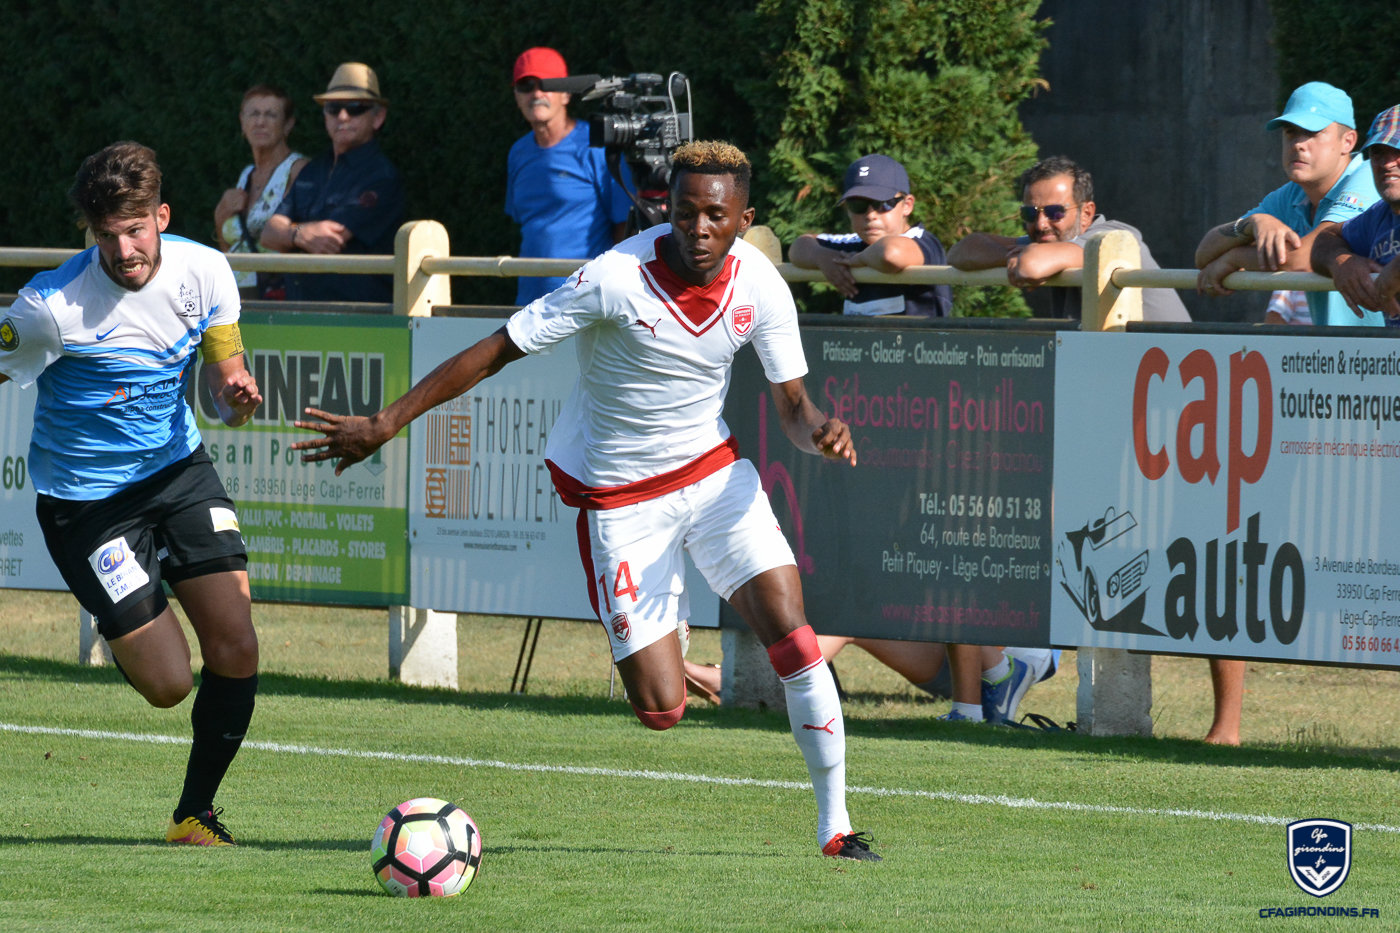 Cfa Girondins : Match nul contre Limoges (1-1) - Formation Girondins